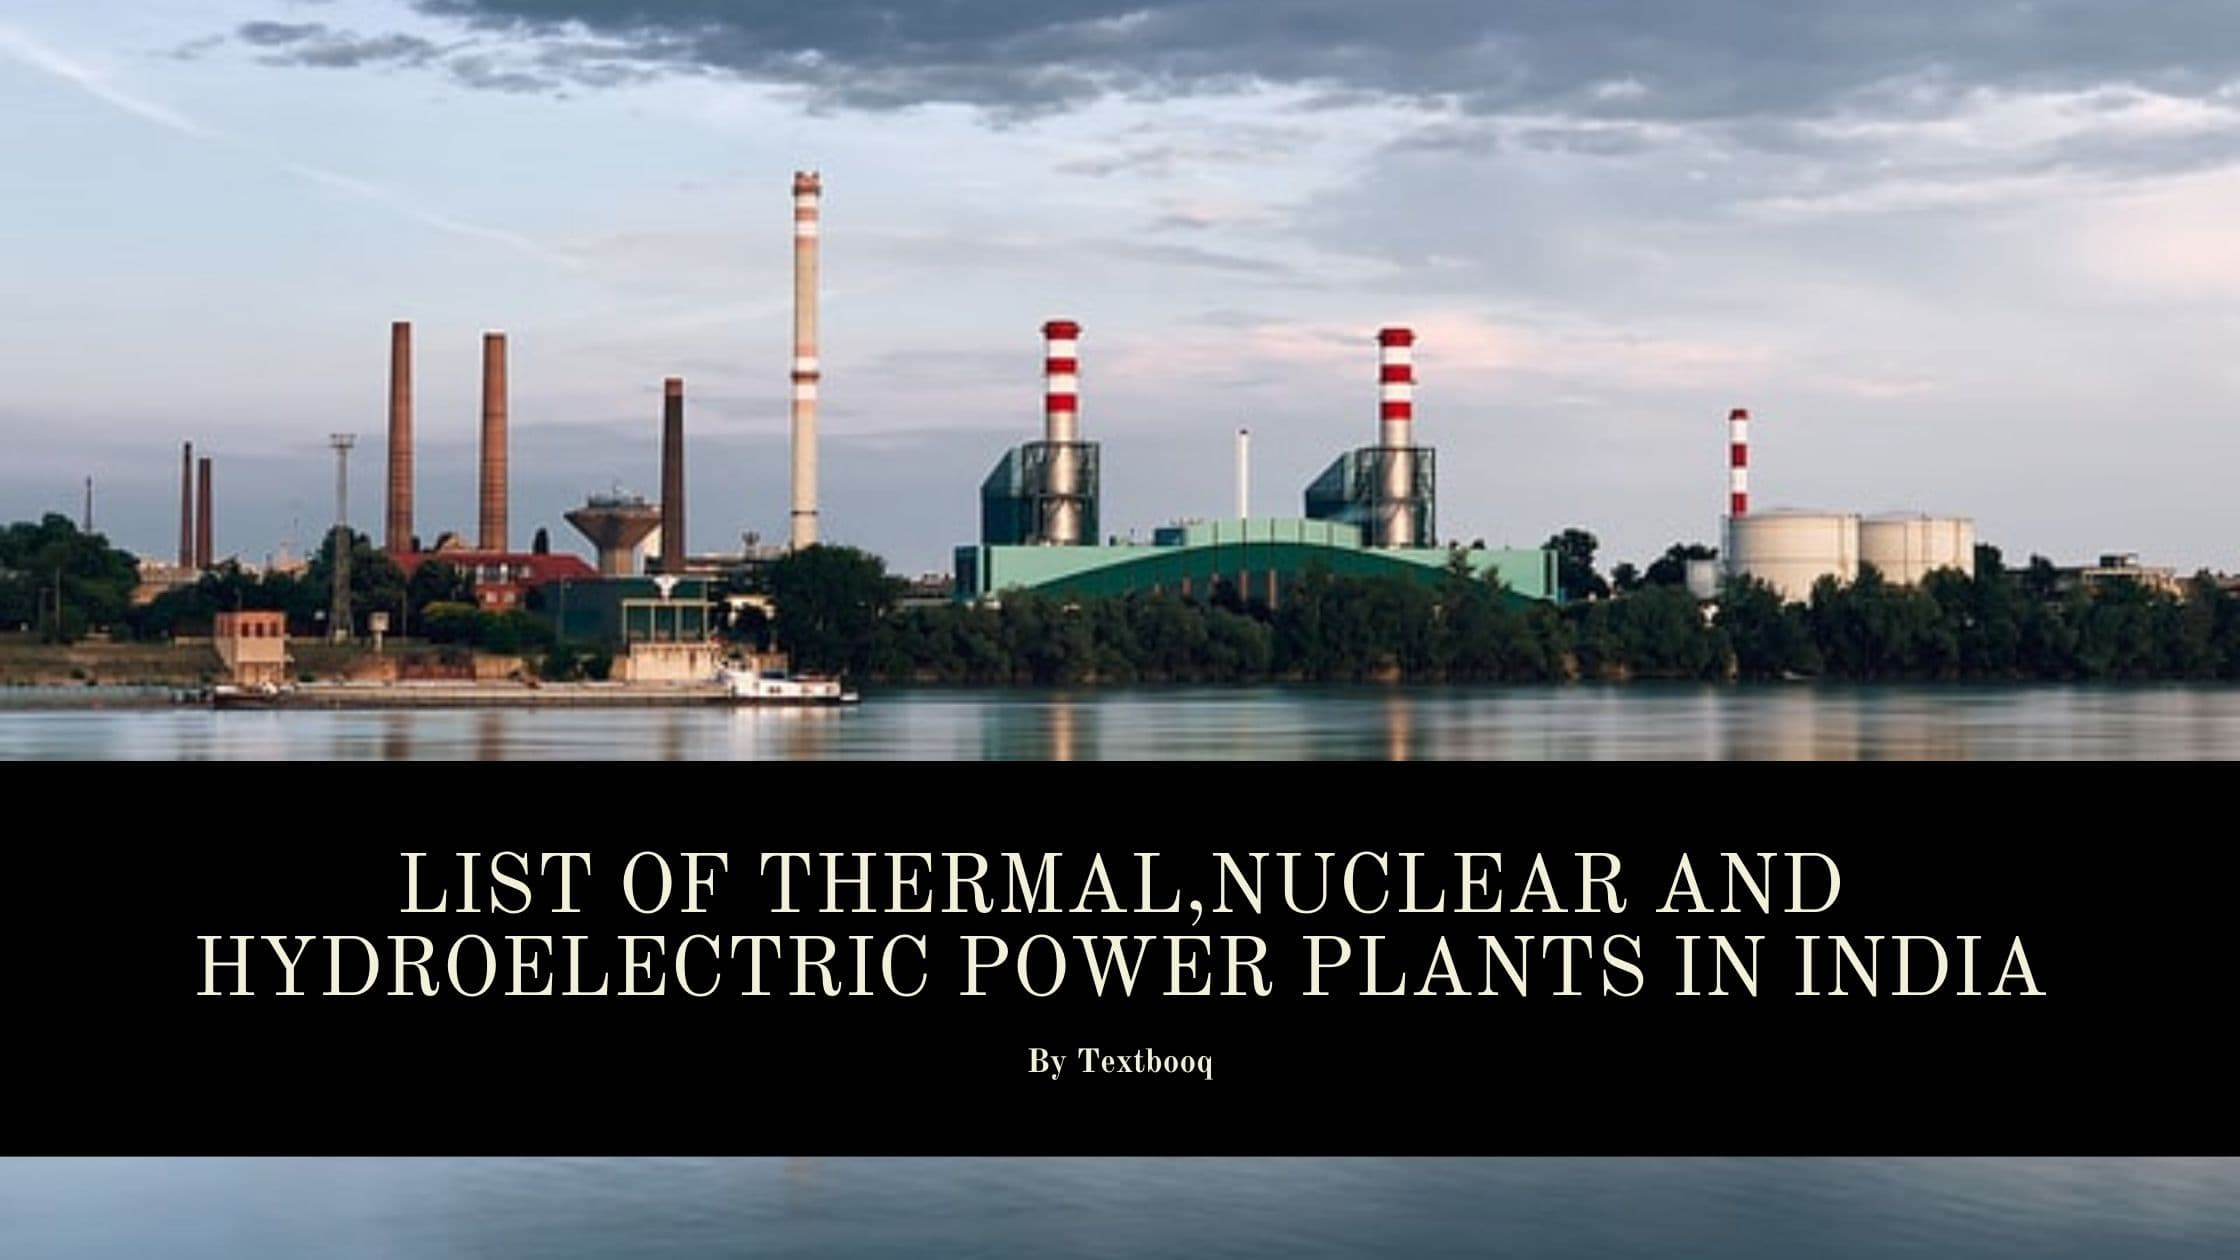 List of Thermal,Nuclear and Hydroelectric Power plants in India